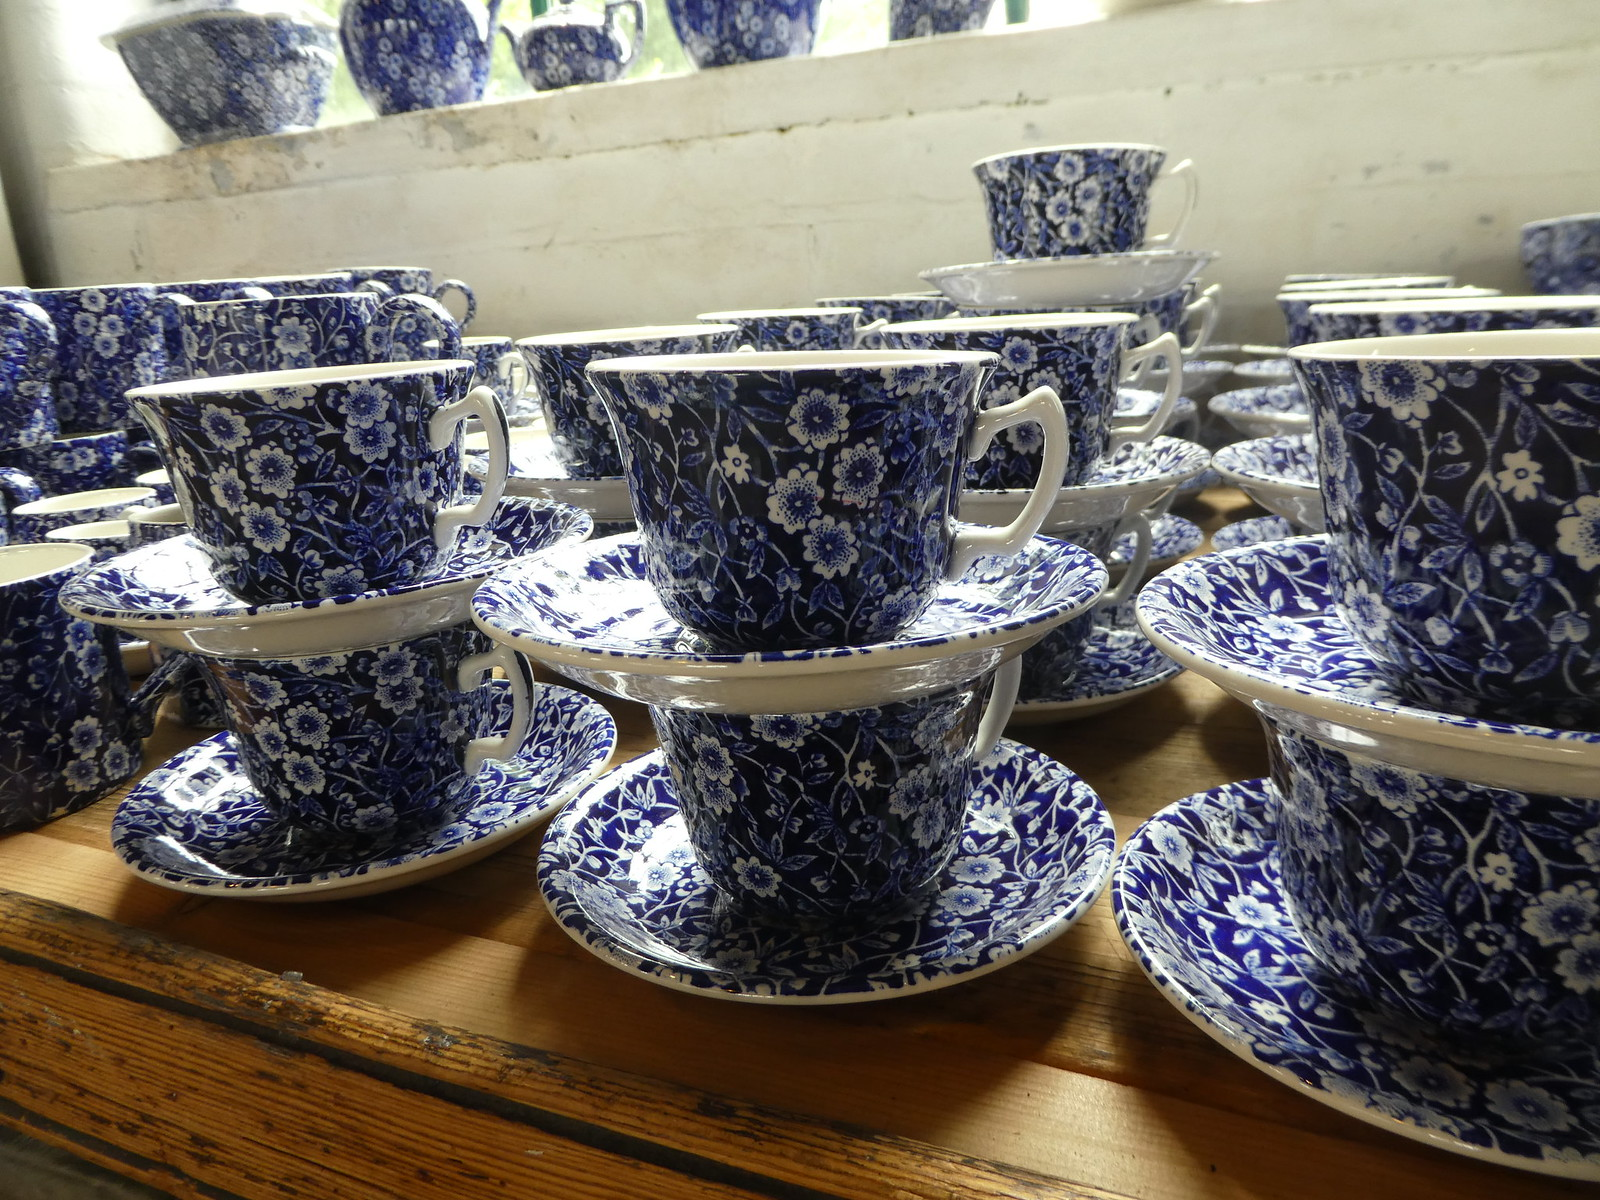 Burleigh pottery range at Middleport Pottery, Burslem